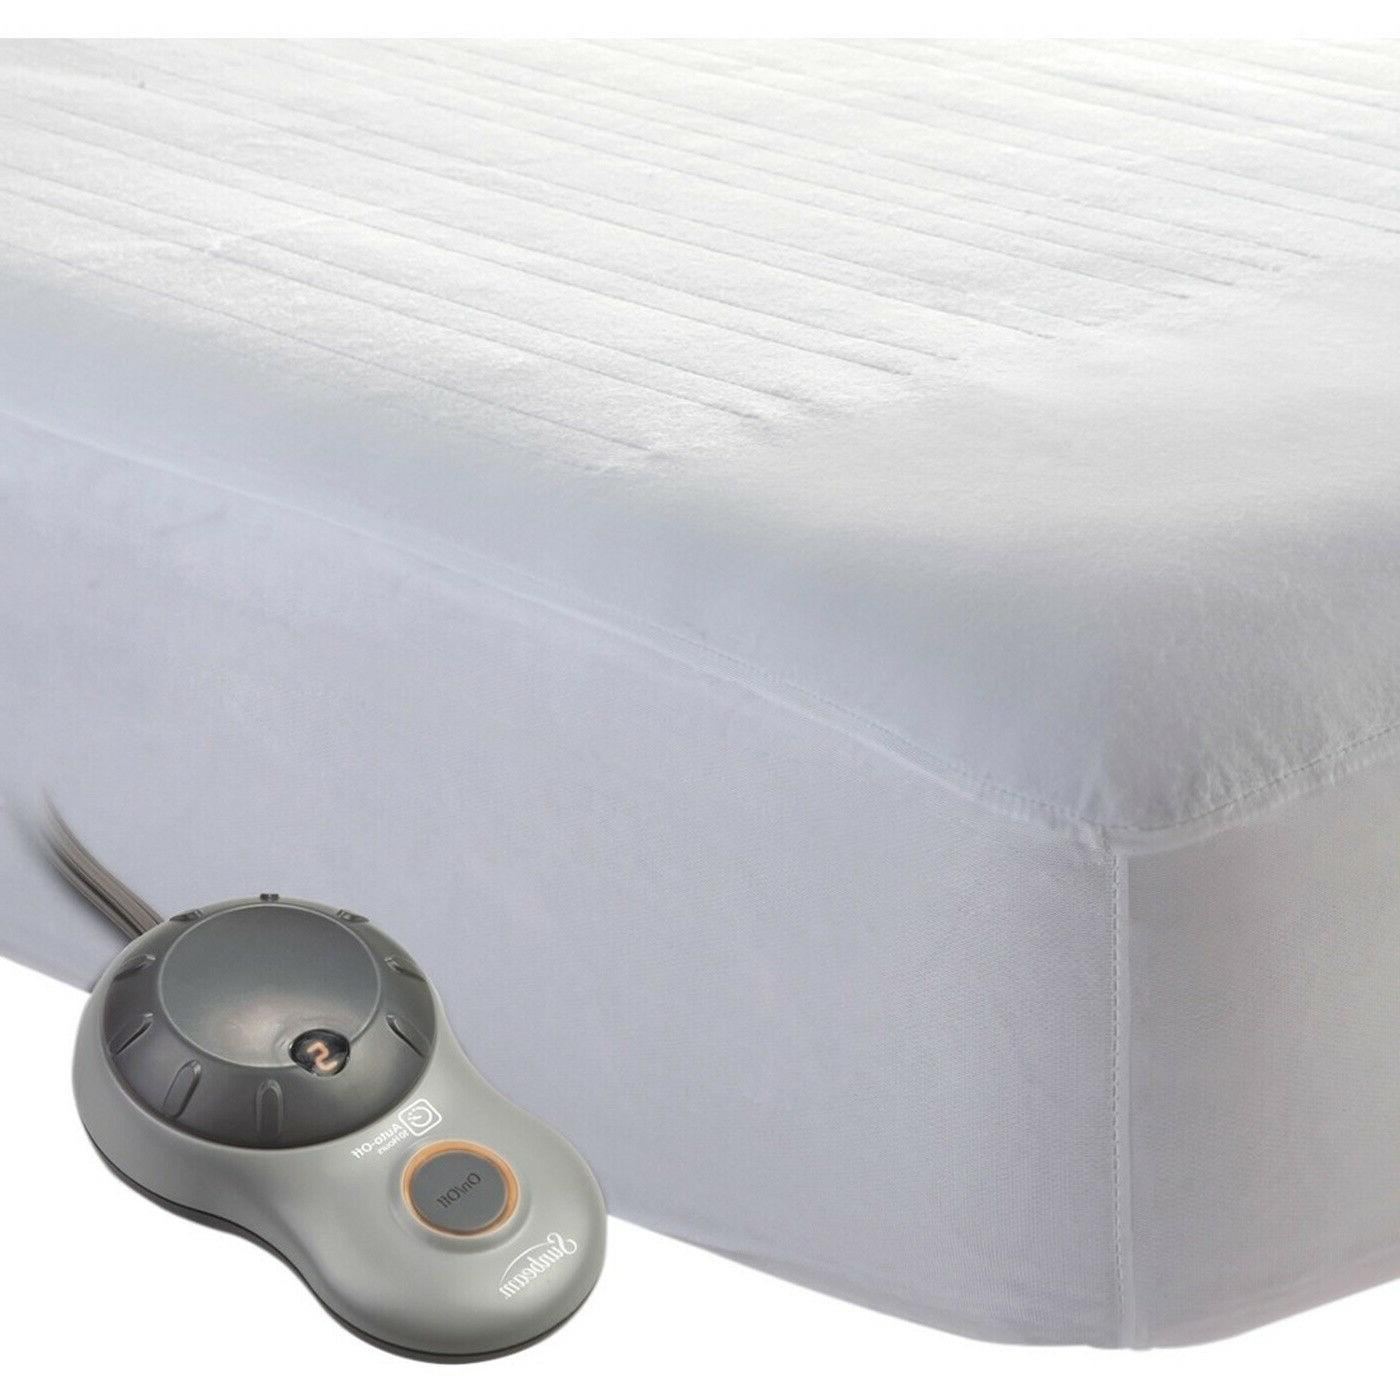 Sunbeam Heated Mattress Pad King Size Protector Cover Electr